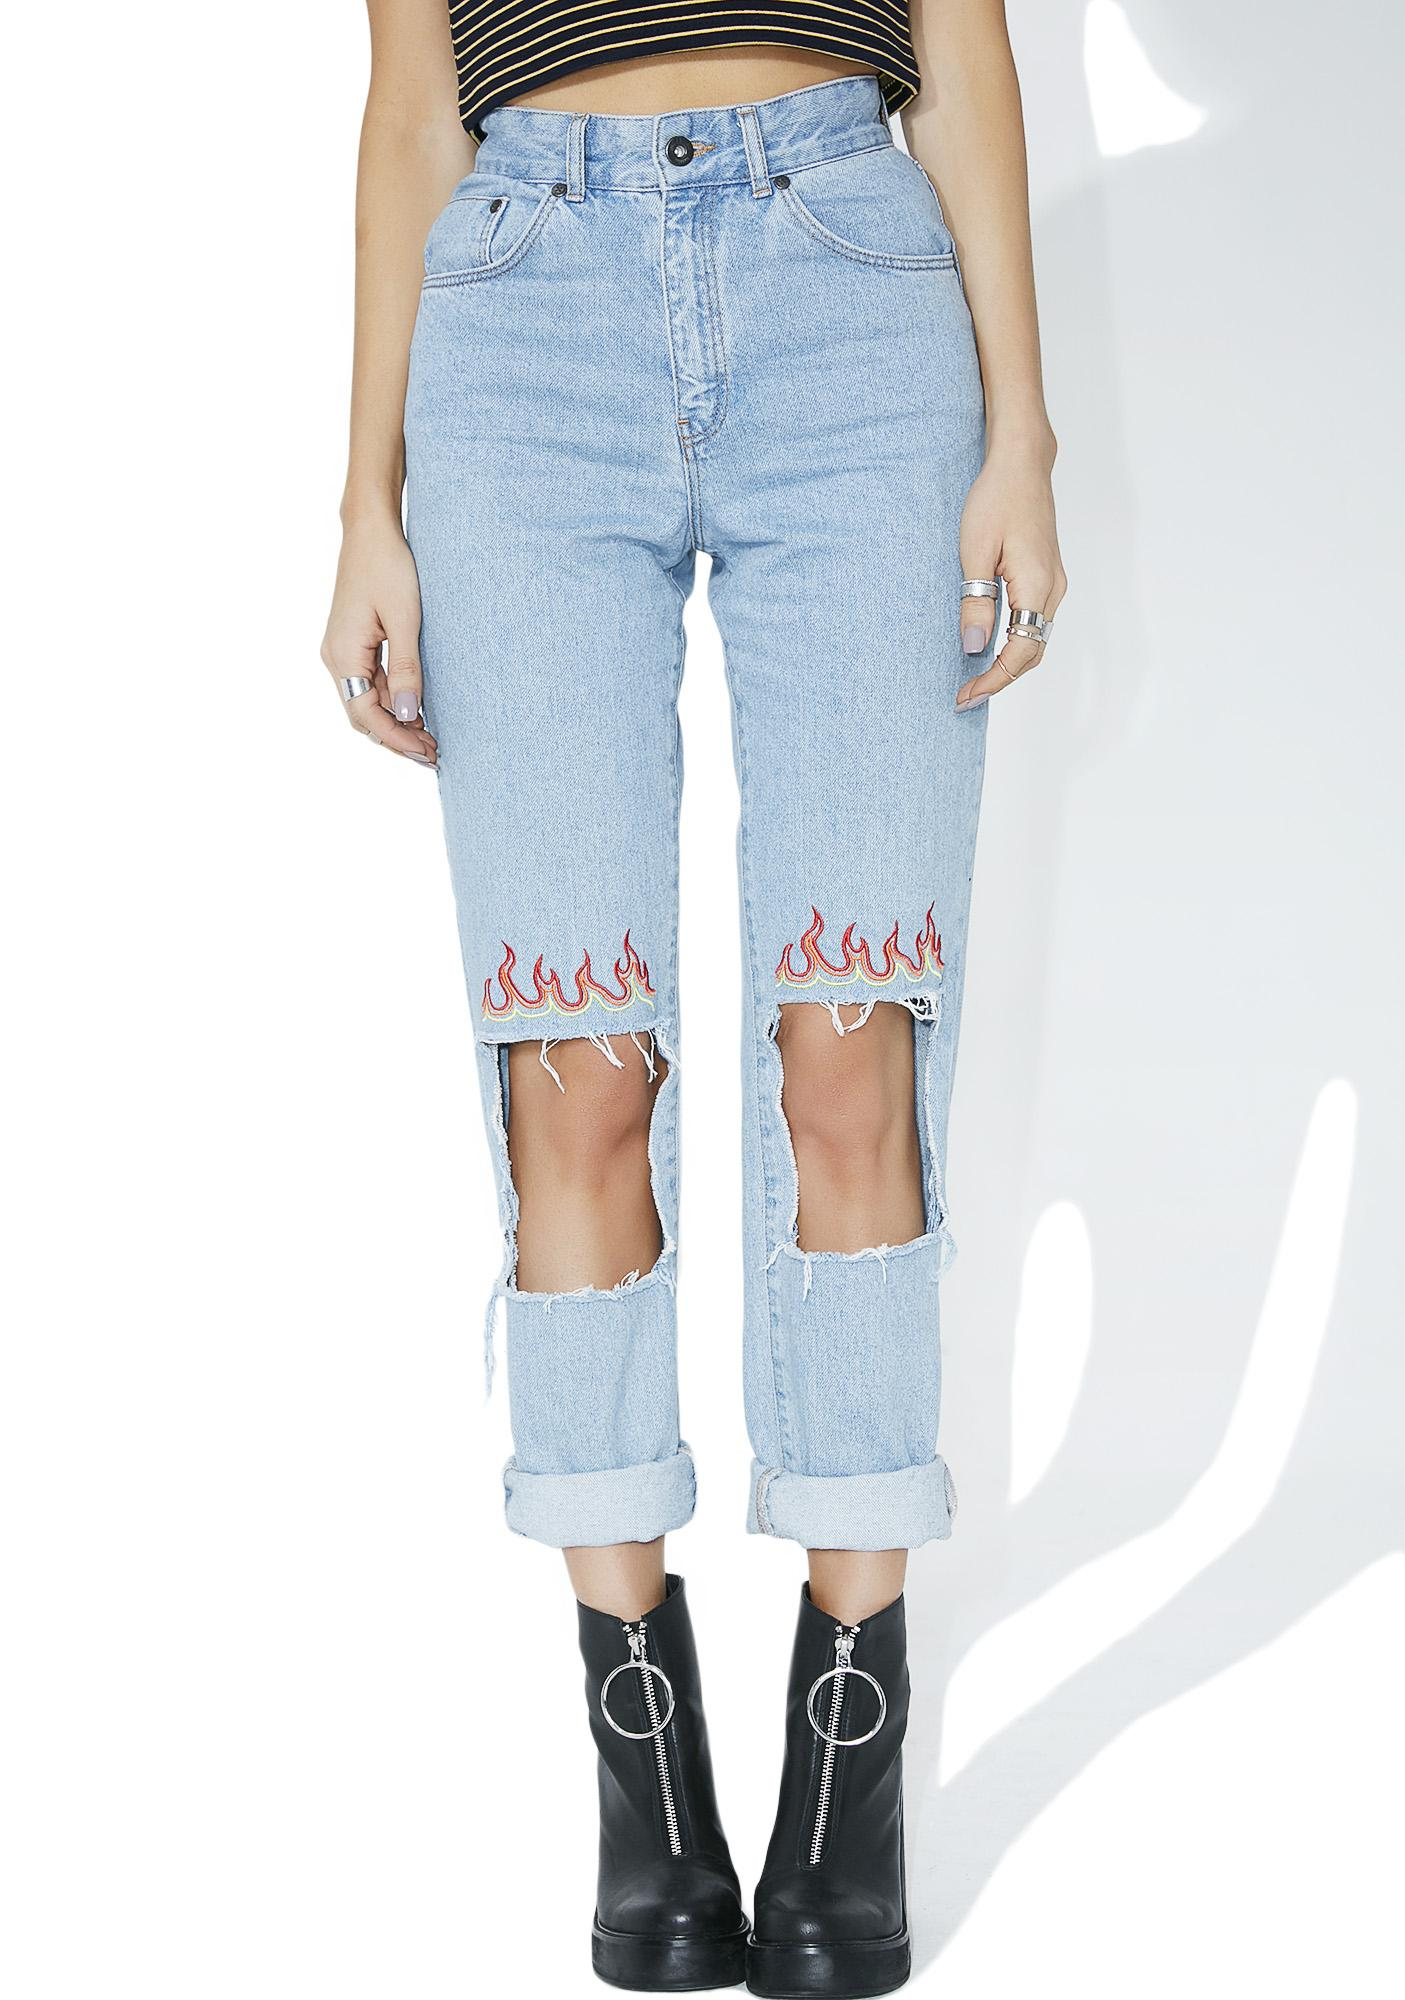 The Ragged Priest Blaze Jeans